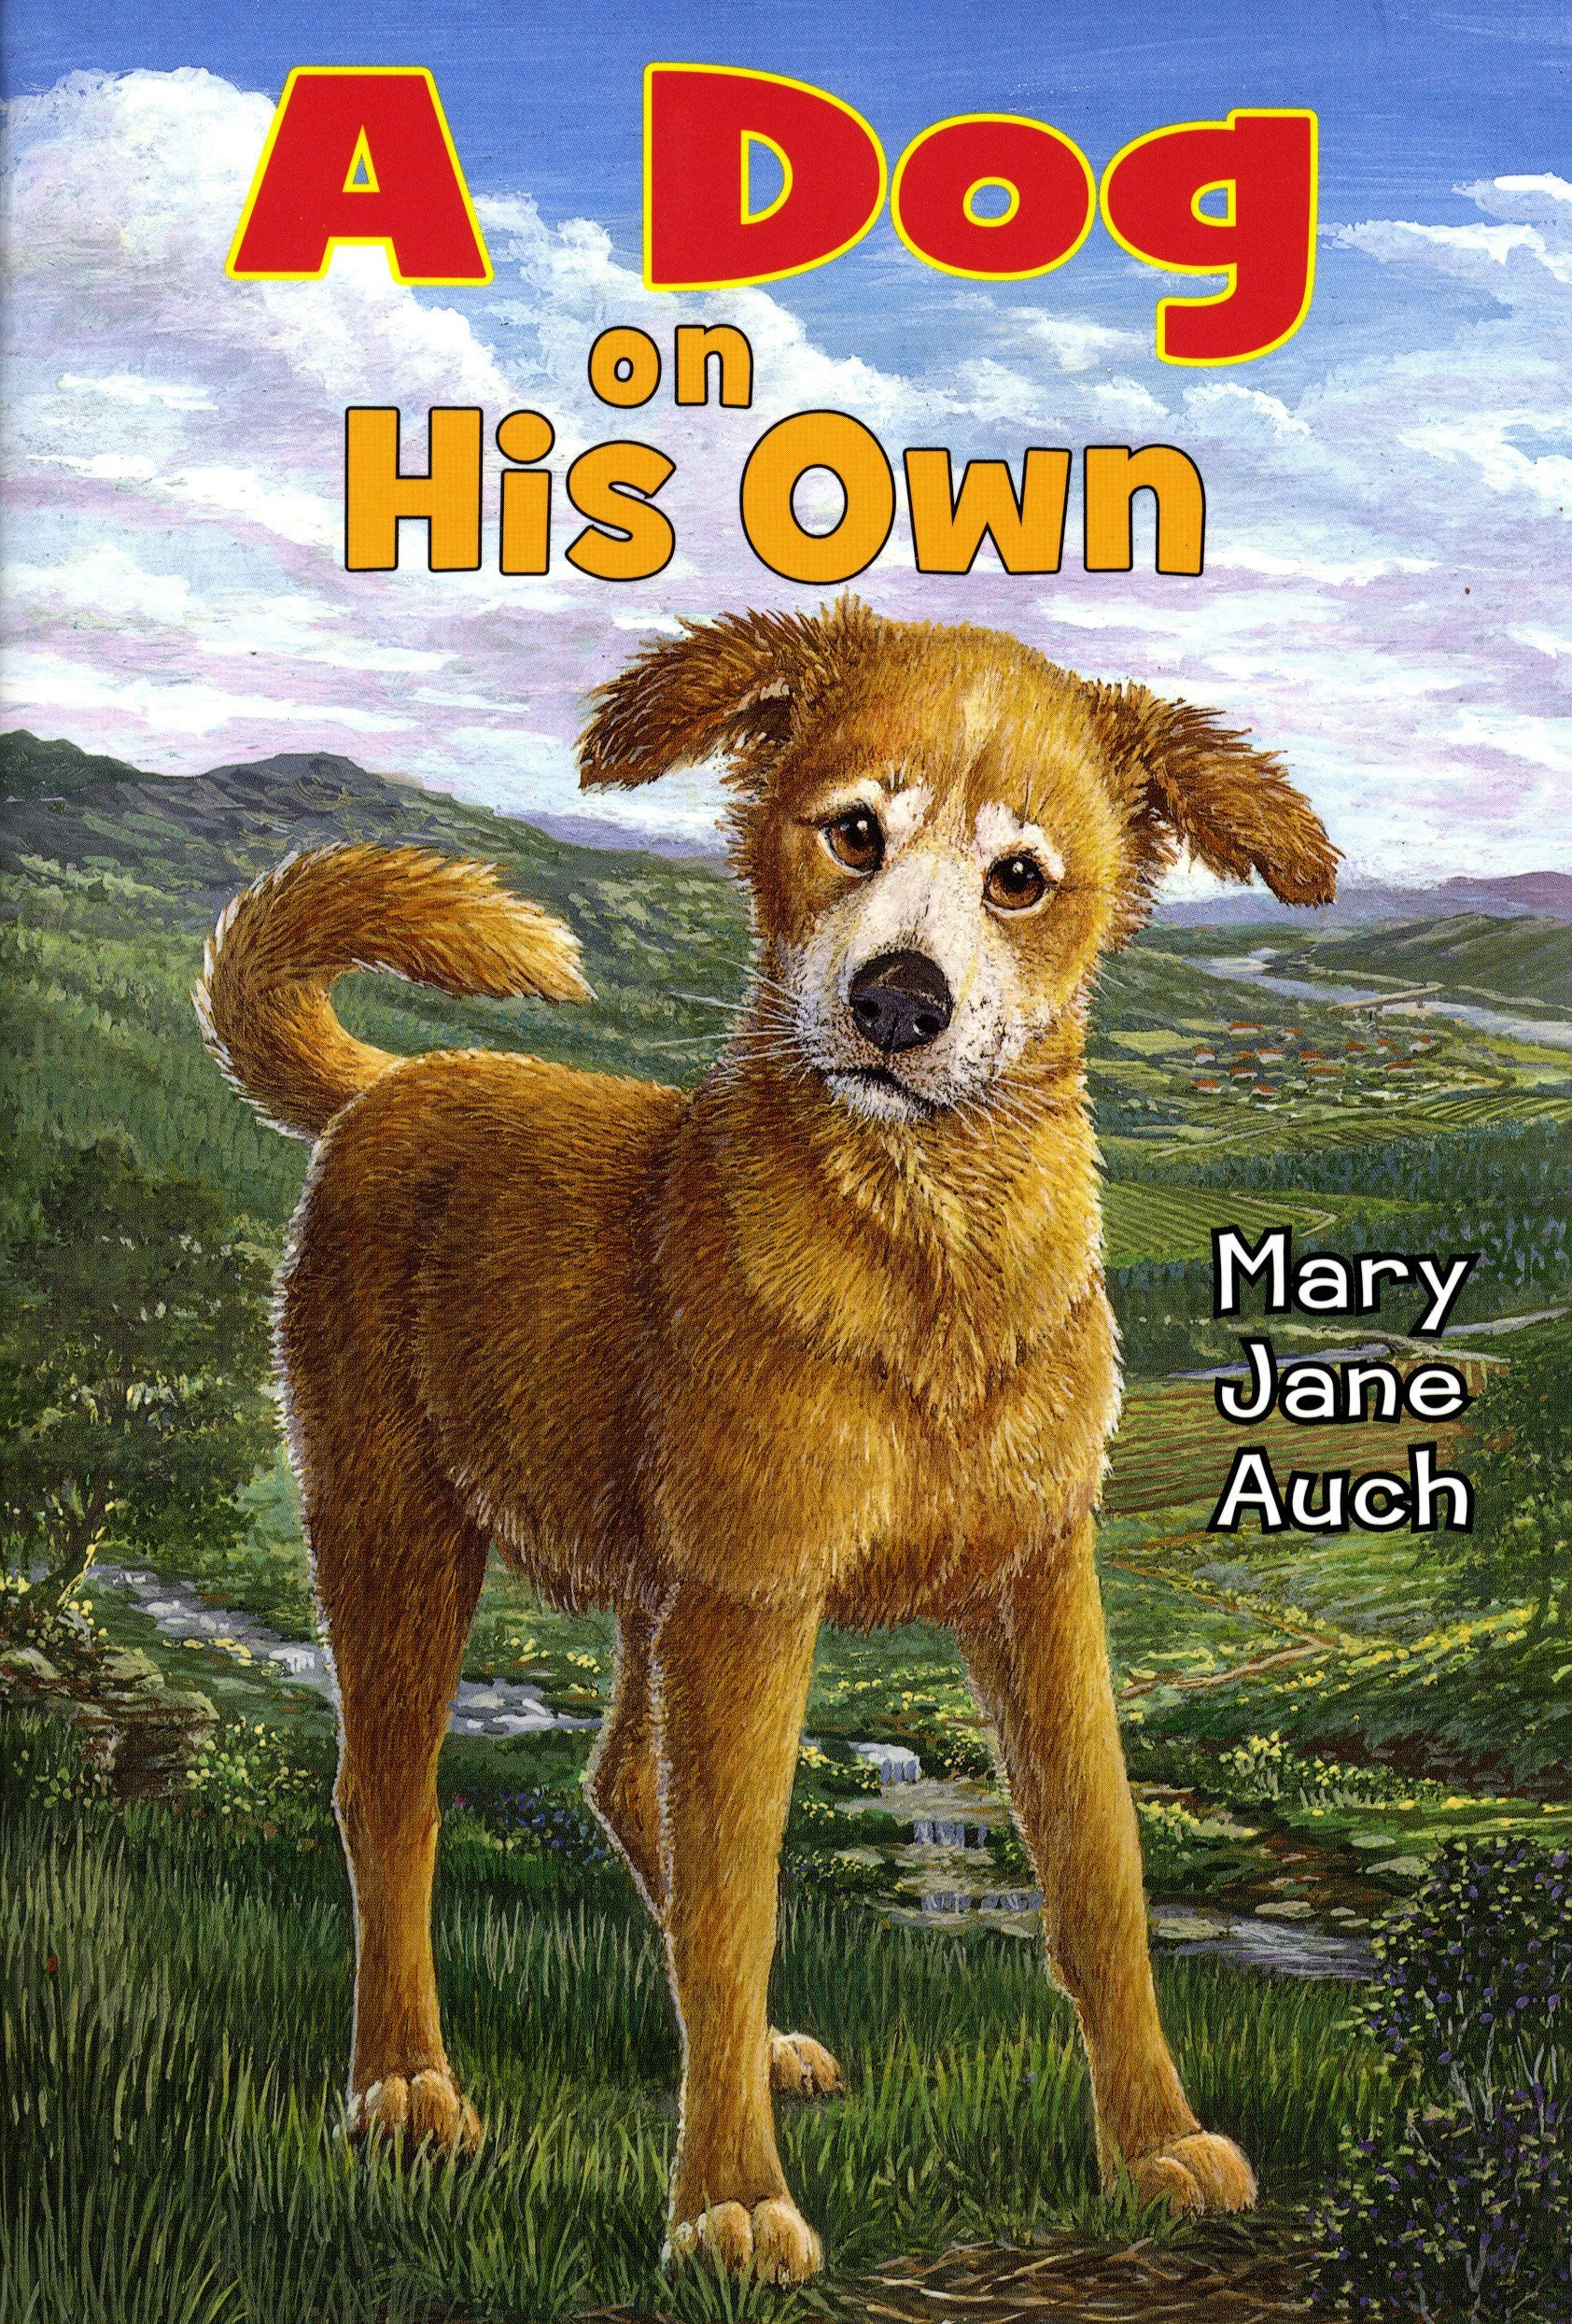 A Dog on His Own: Mary Jane Auch: 9780823420889: Amazon.com: Books